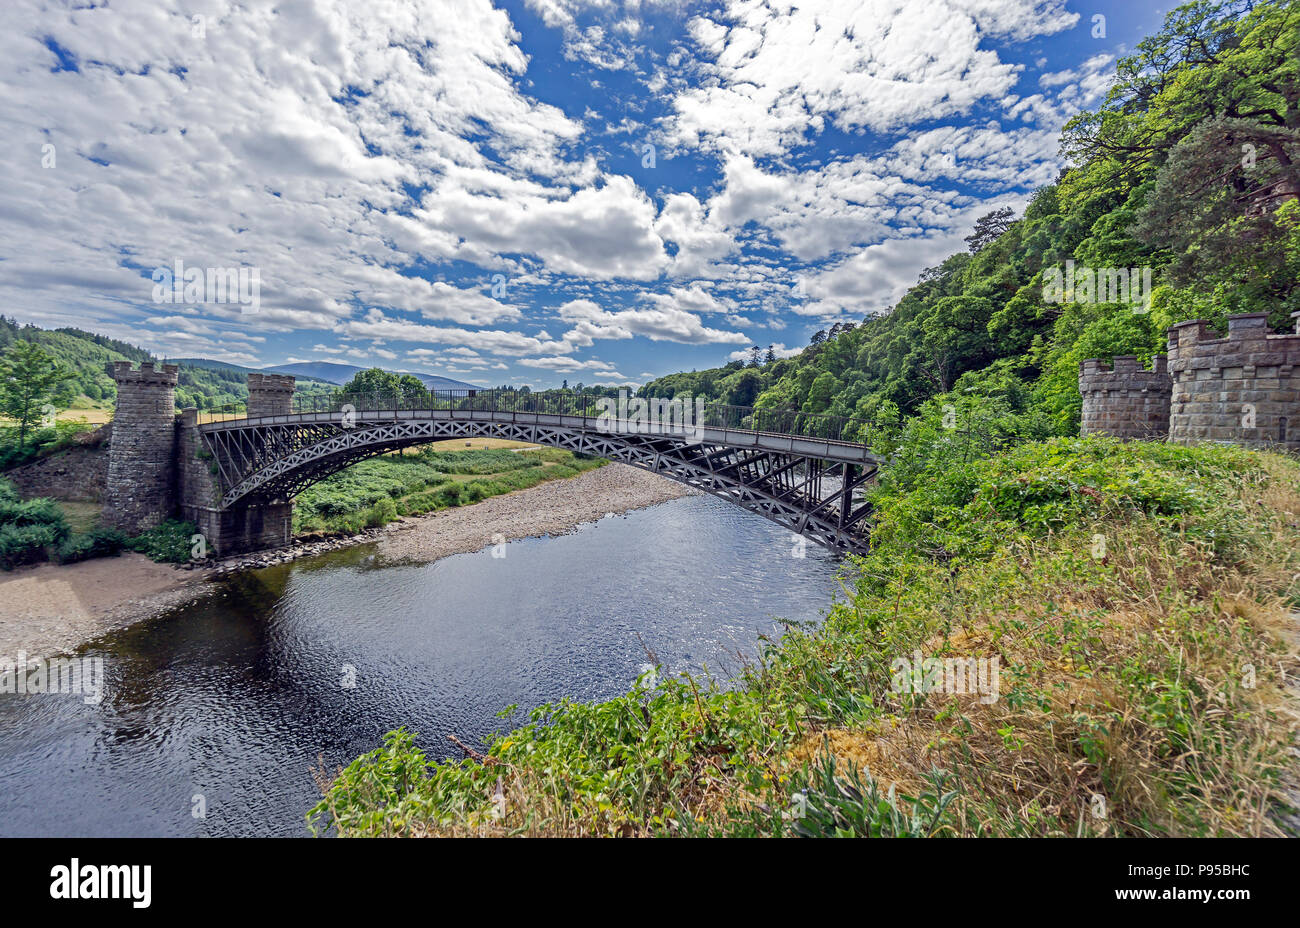 The old Craigellachie Bridge spanning the River Spey at Craigellachie near Aberlour in Moray Scotland UK - Stock Image